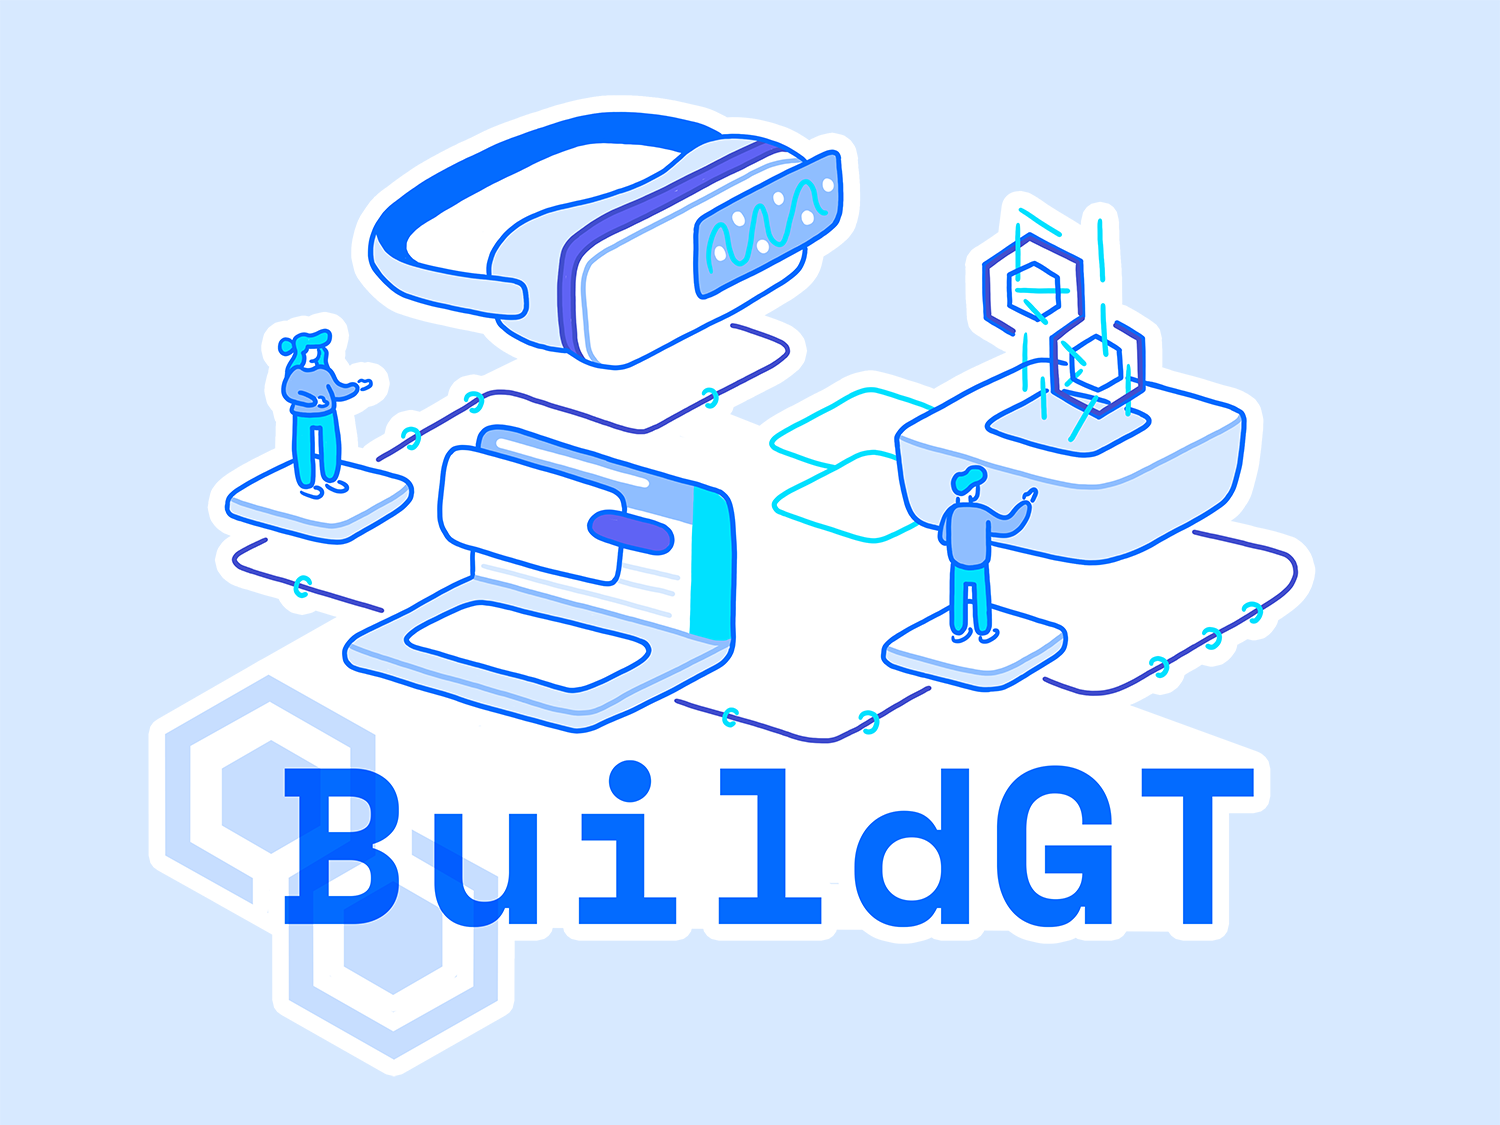 BuildGT Sticker buildgt hackathon hackgt